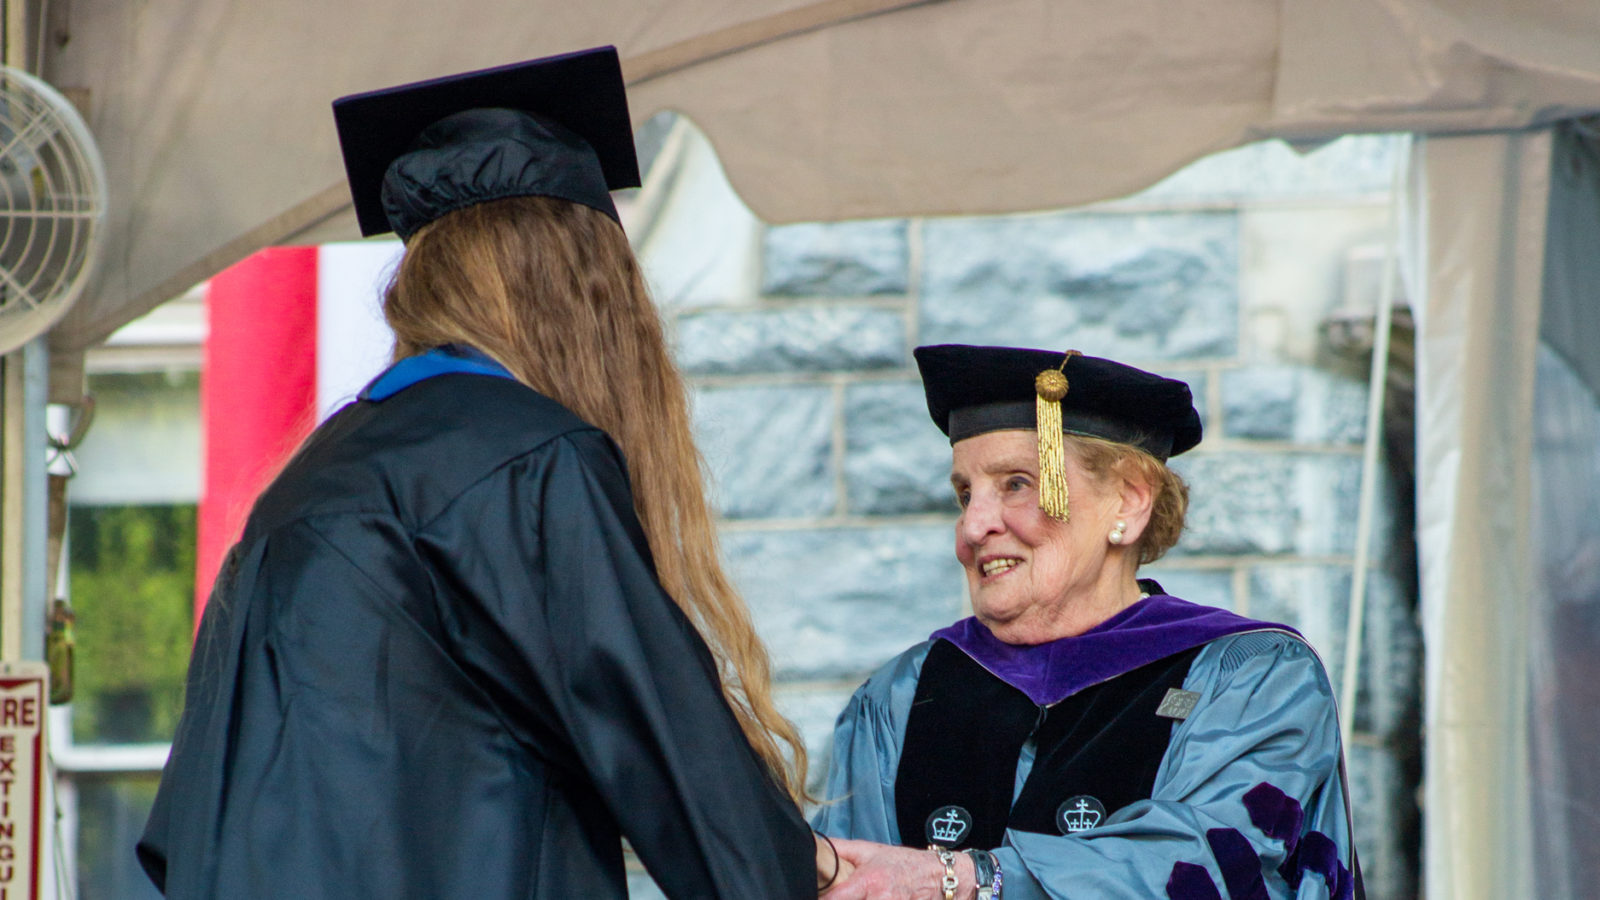 Graduate shaking hands with Madeleine Albright